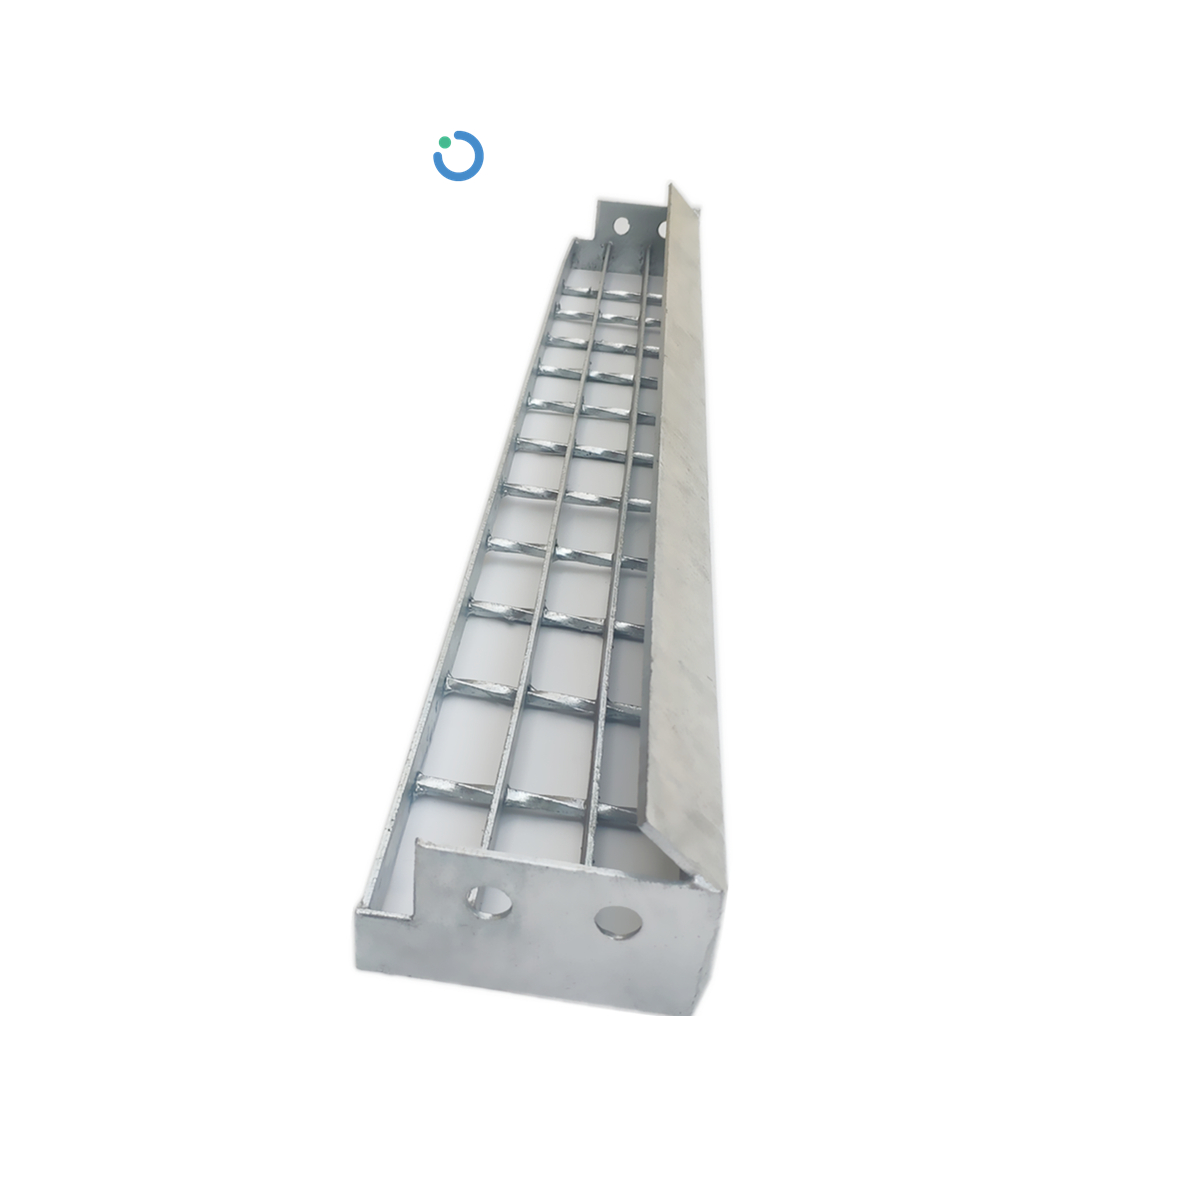 Outdoor Heavy Duty Prefabricated Galvanised Steel Non Skid Stair Treads Buy Heavy Duty Stair Treads Galvanised Stair Treads Non Skid Stair Treads Product On Alibaba Com